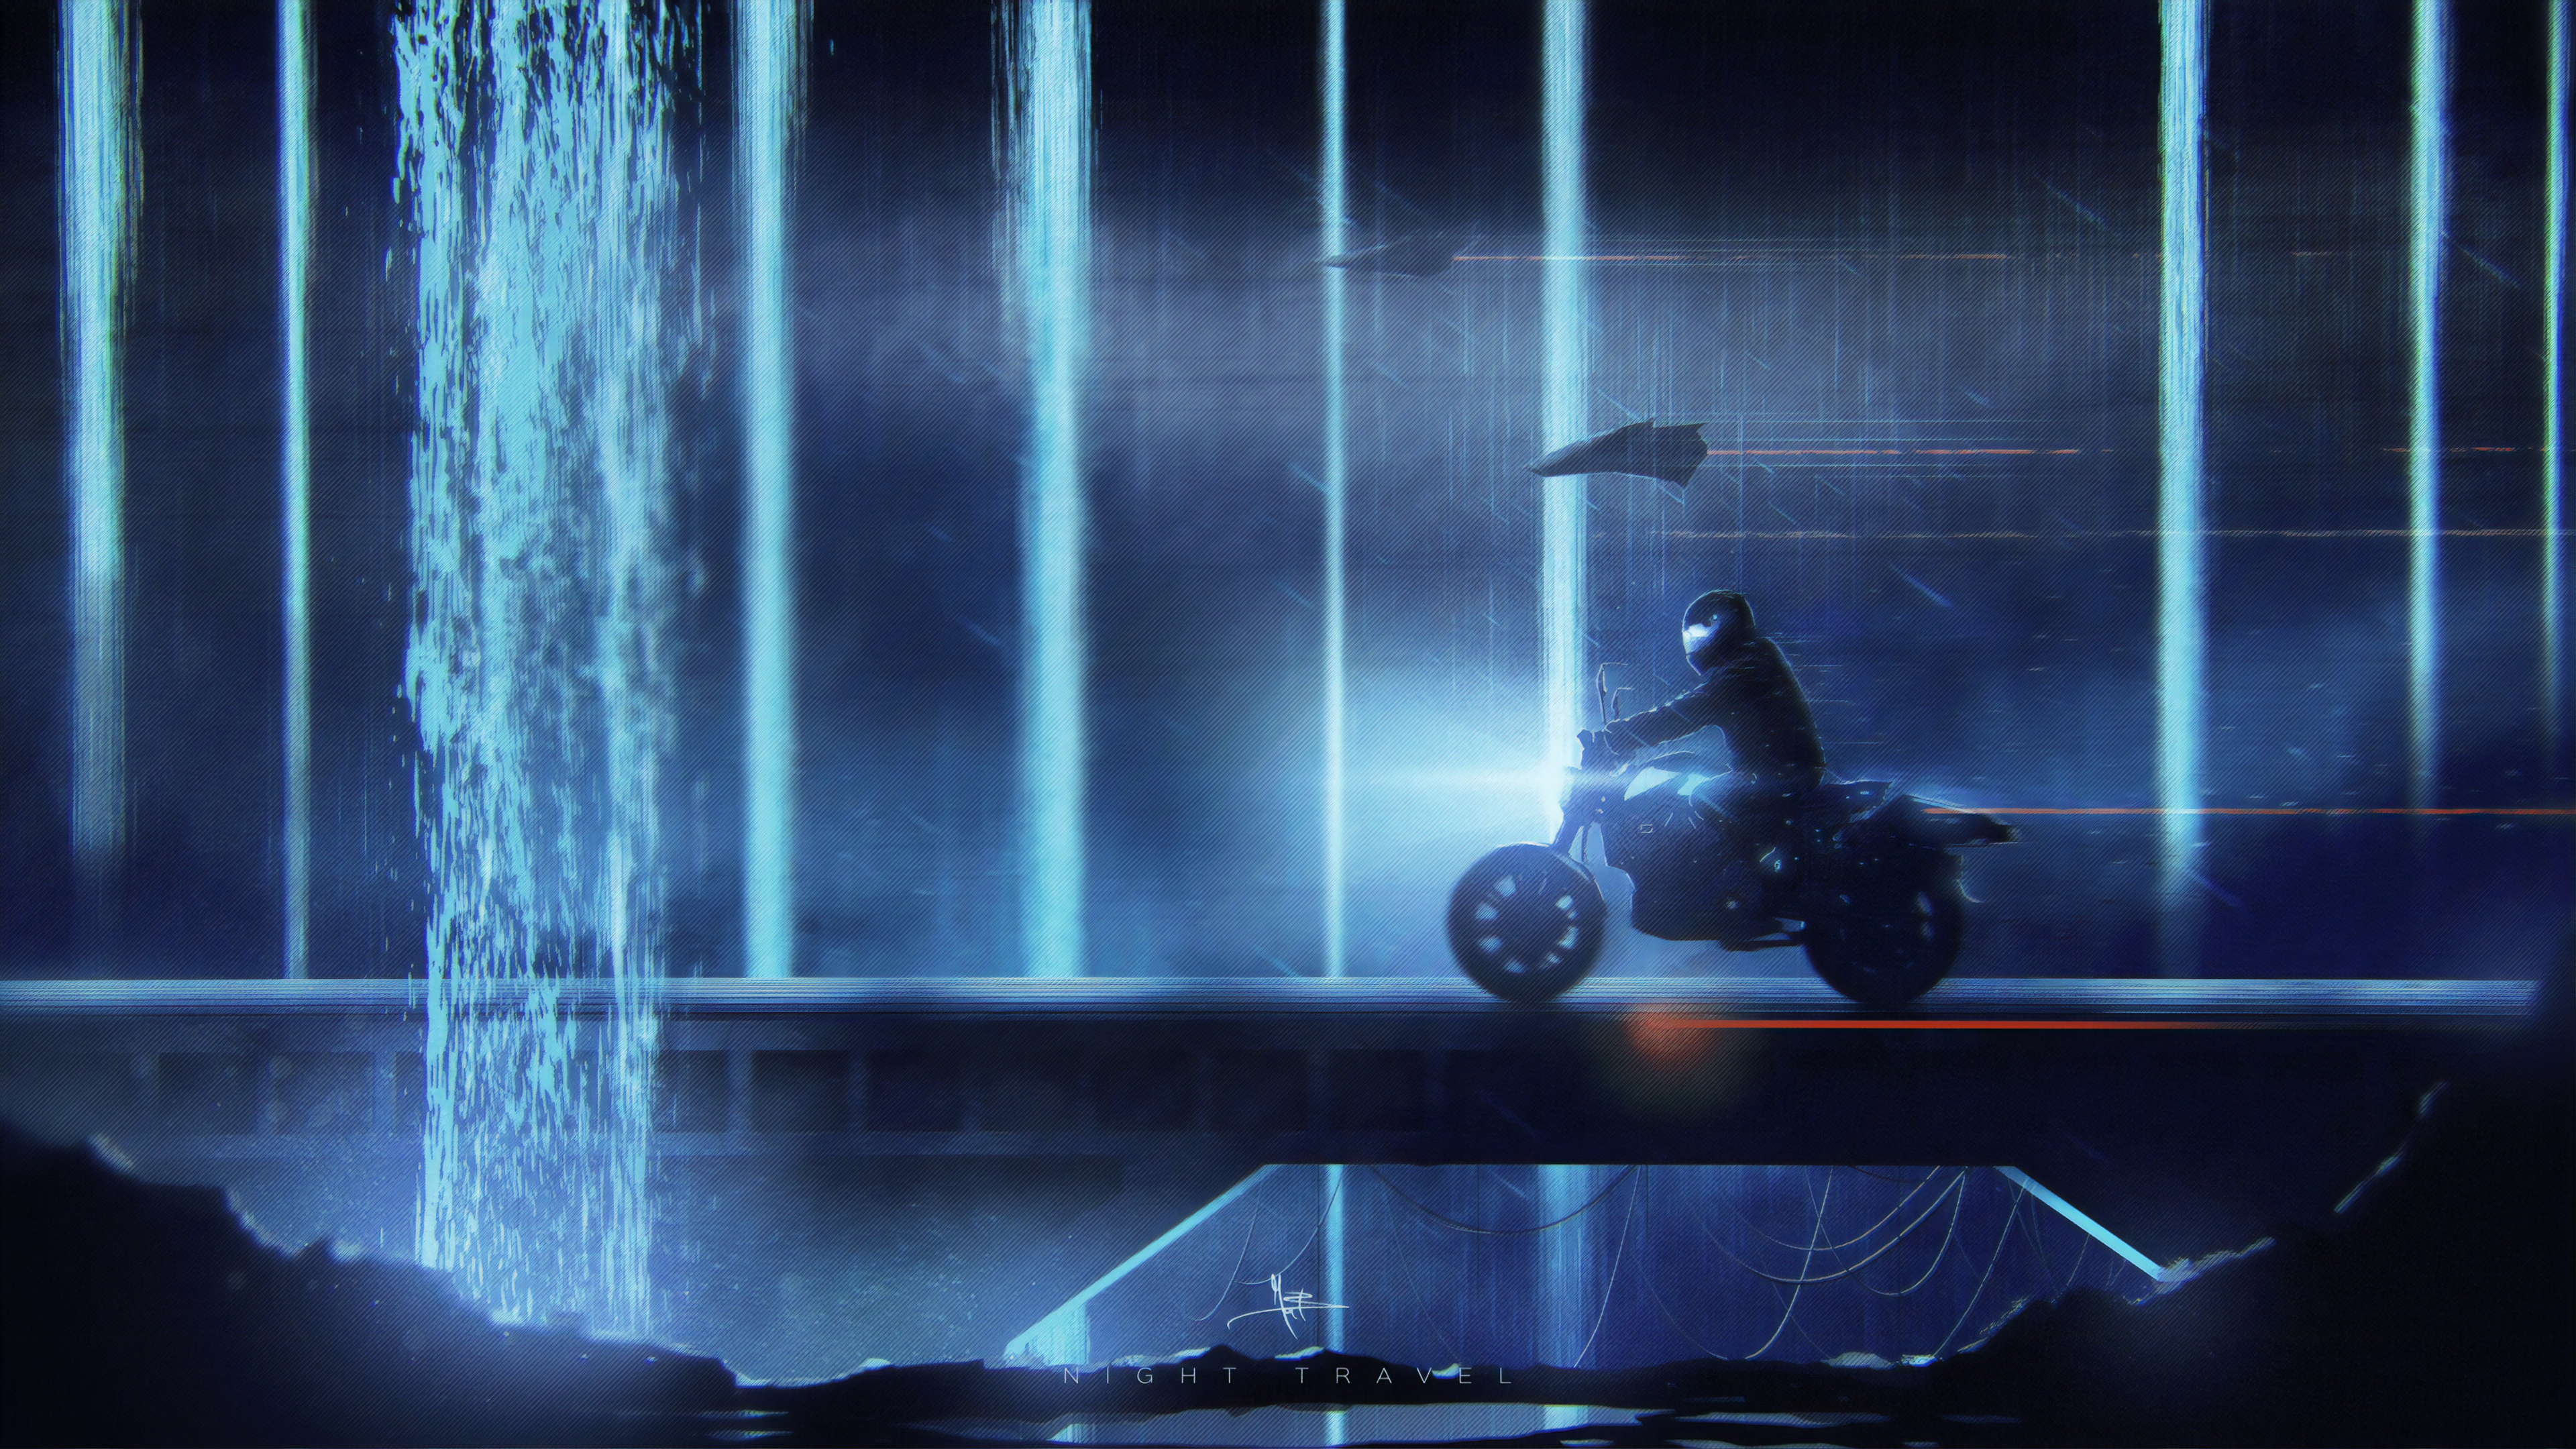 night travel 4k 1560535666 - Night Travel 4k - hd-wallpapers, digital art wallpapers, biker wallpapers, artwork wallpapers, artstation wallpapers, artist wallpapers, 4k-wallpapers